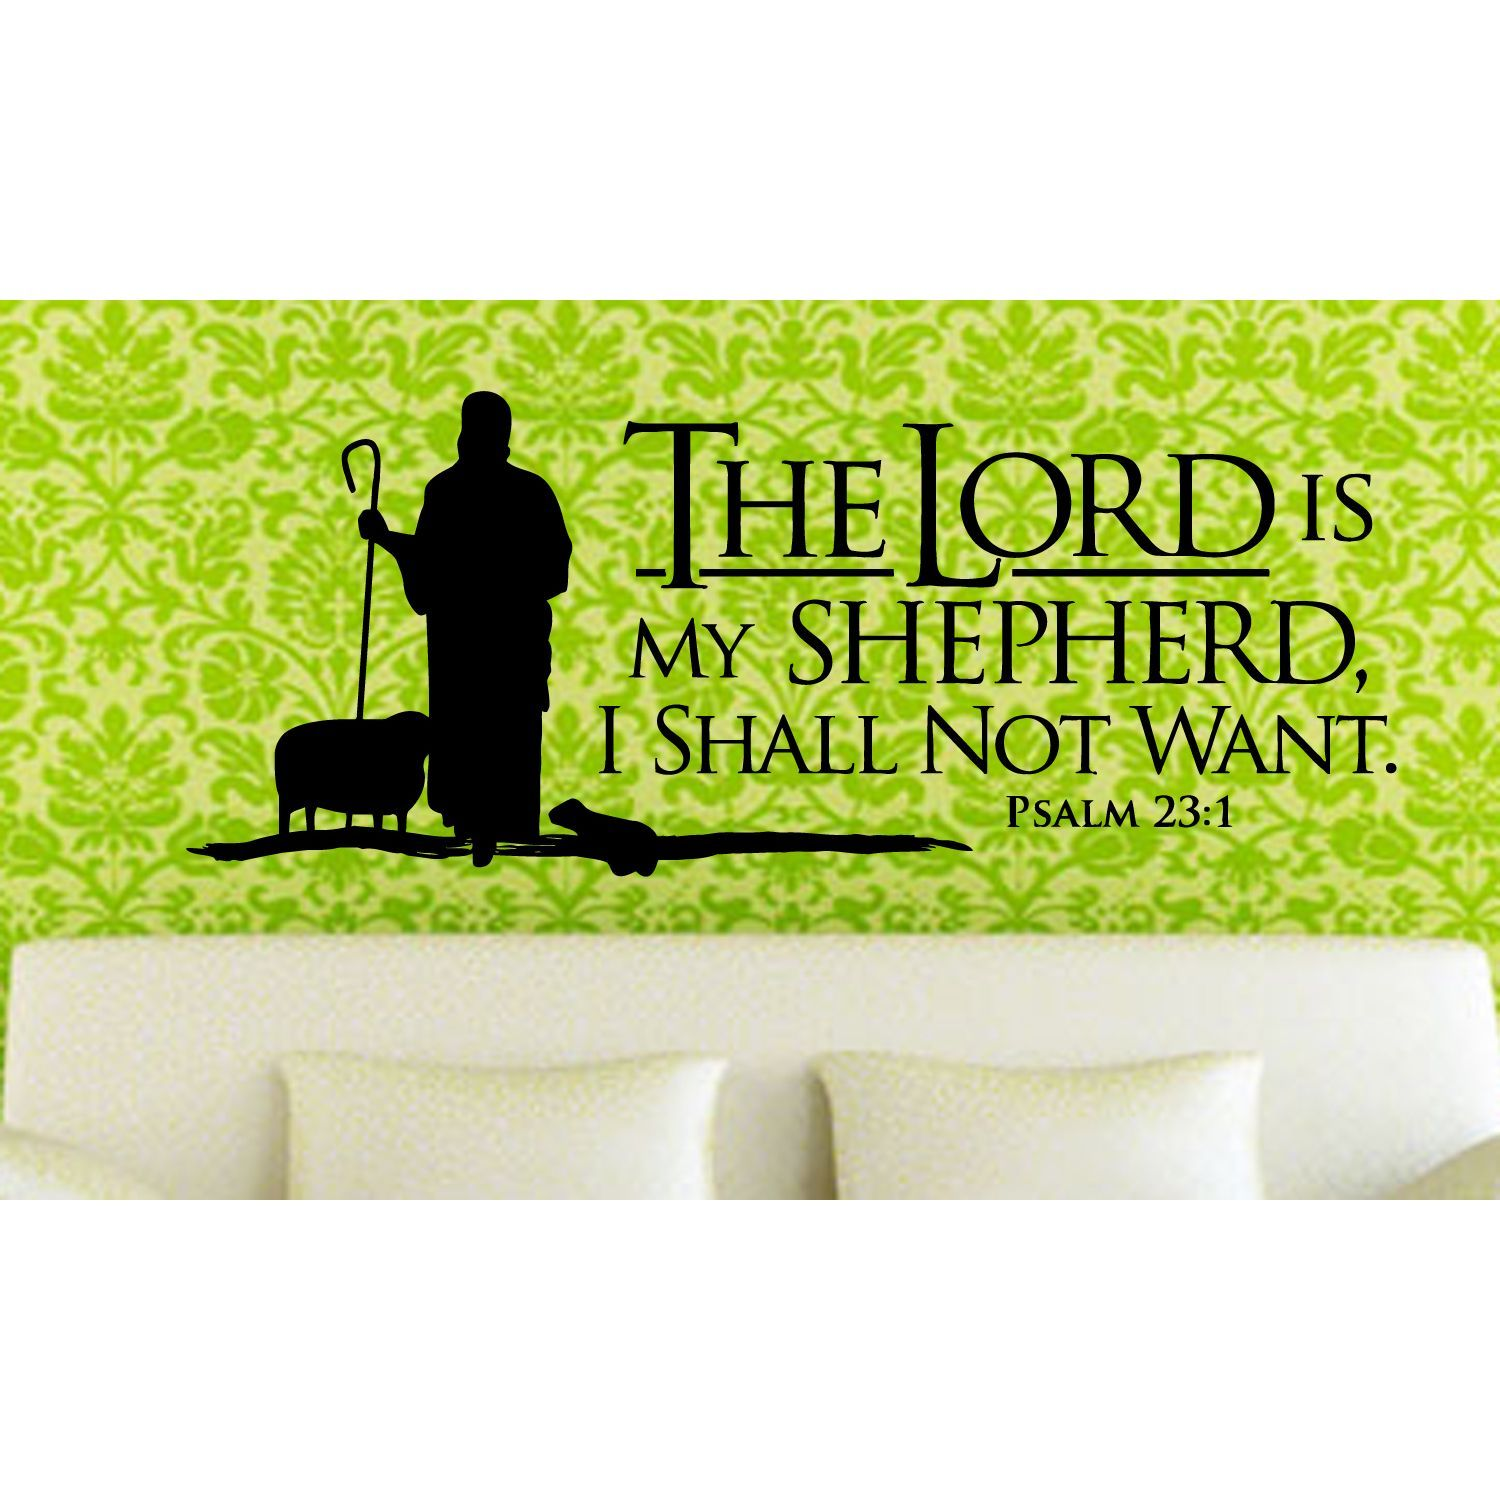 Online Shopping Bedding Furniture Electronics Jewelry Clothing More Wall Art Quotes Psalms Lord Is My Shepherd